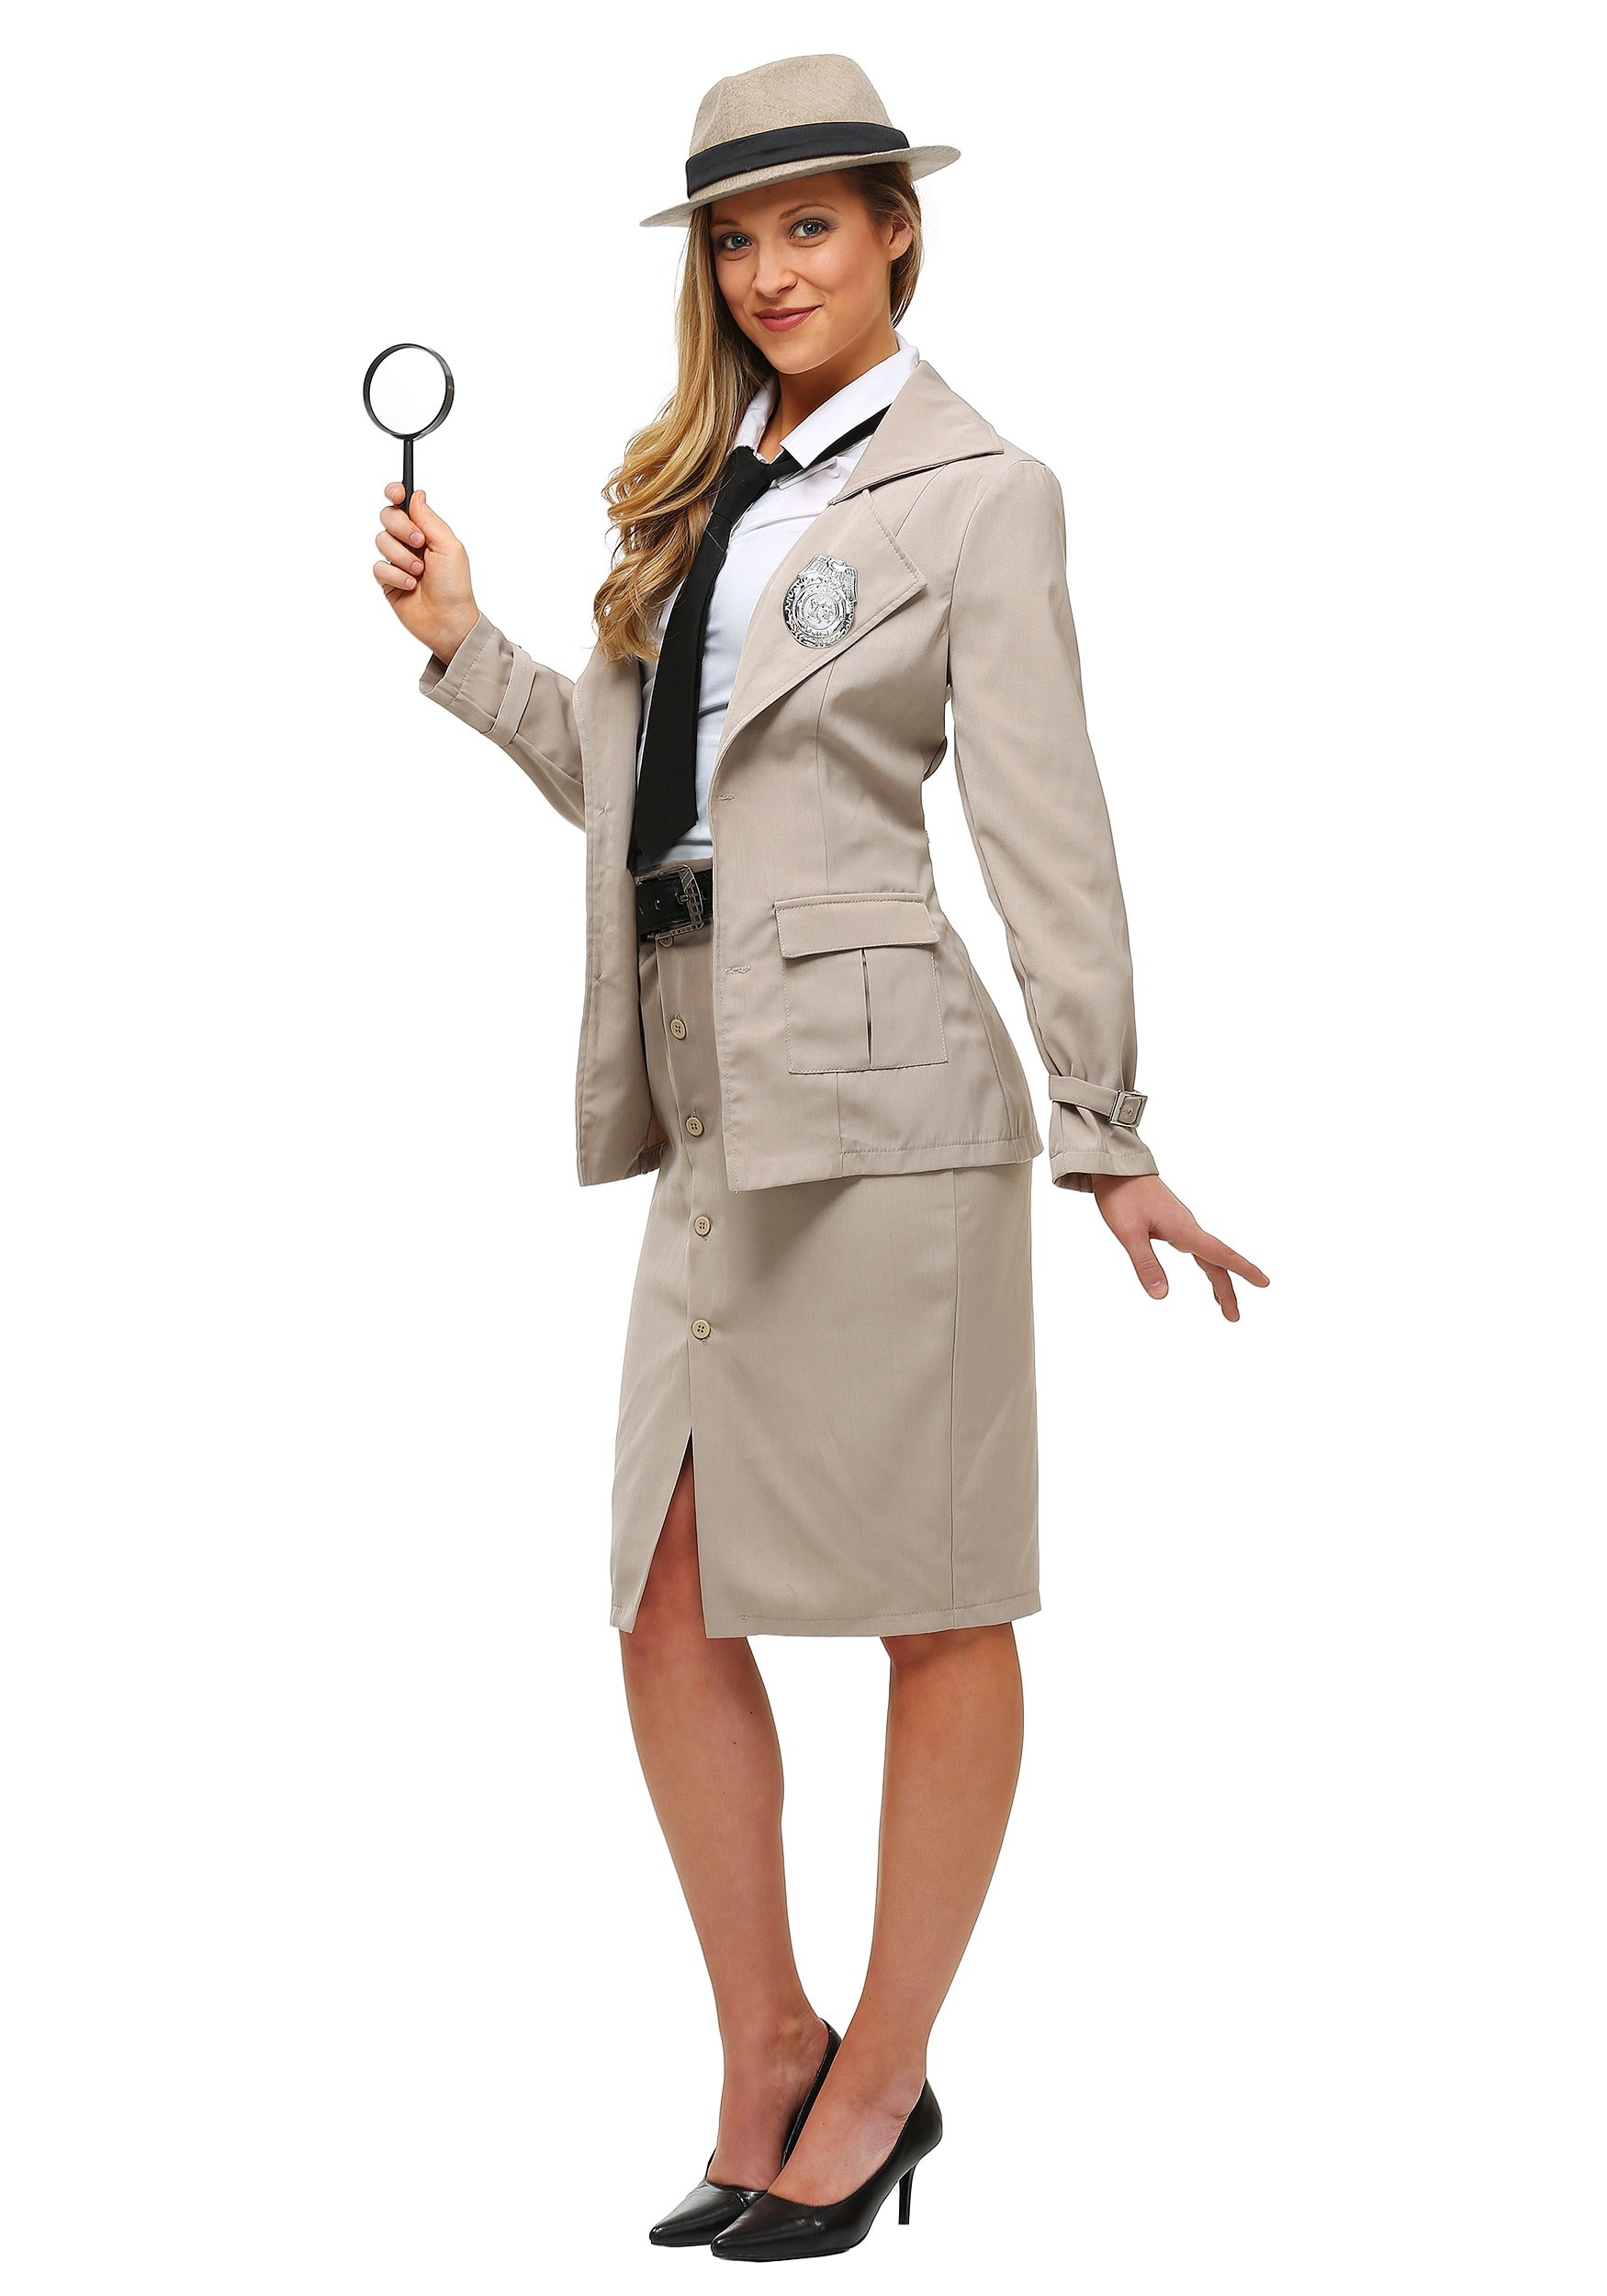 985f38147e97 Adult Miss Private Eye Plus Size Costume